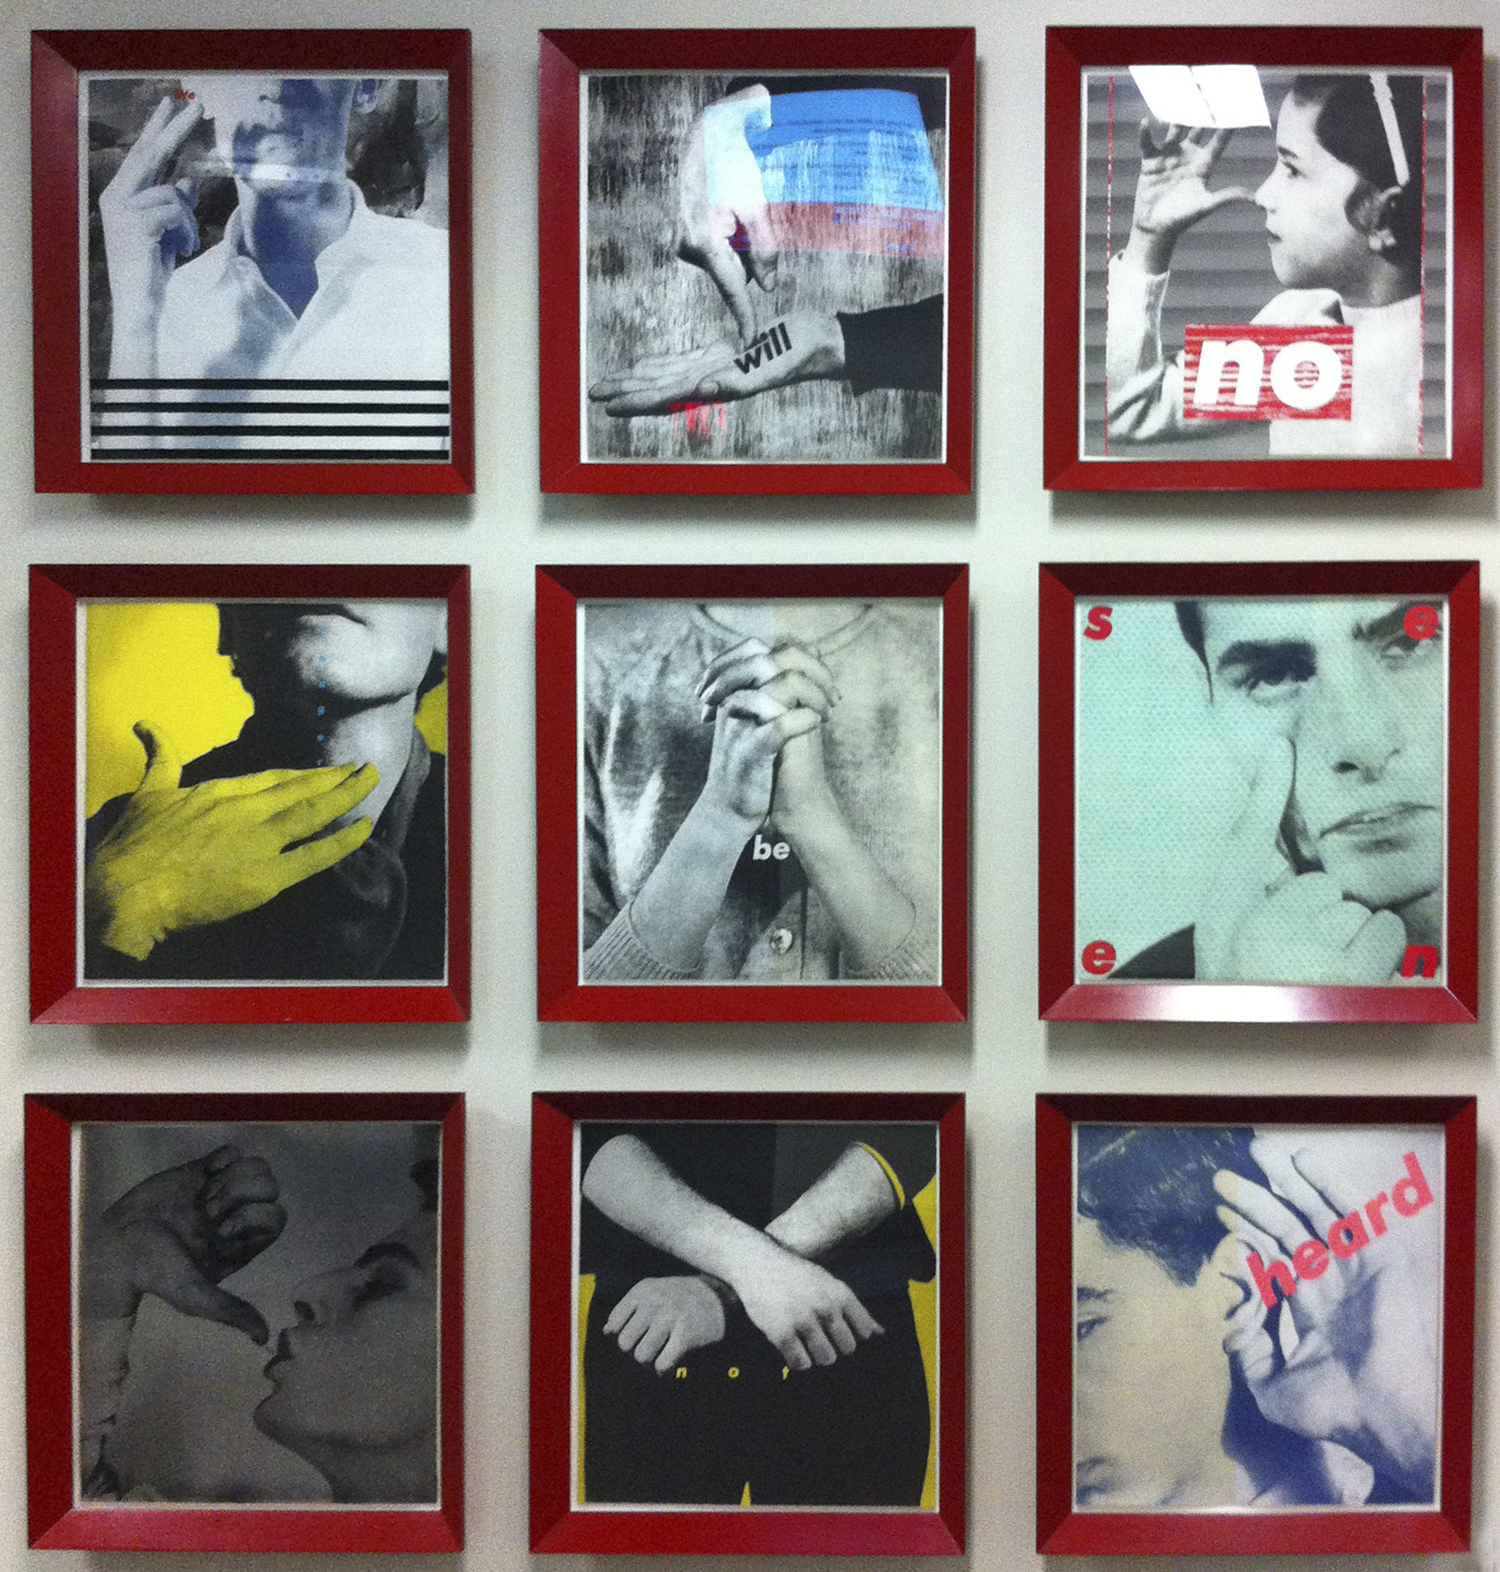 Barbara Kruger,  Untitled (We will no longer be seen and not heard), (1985)